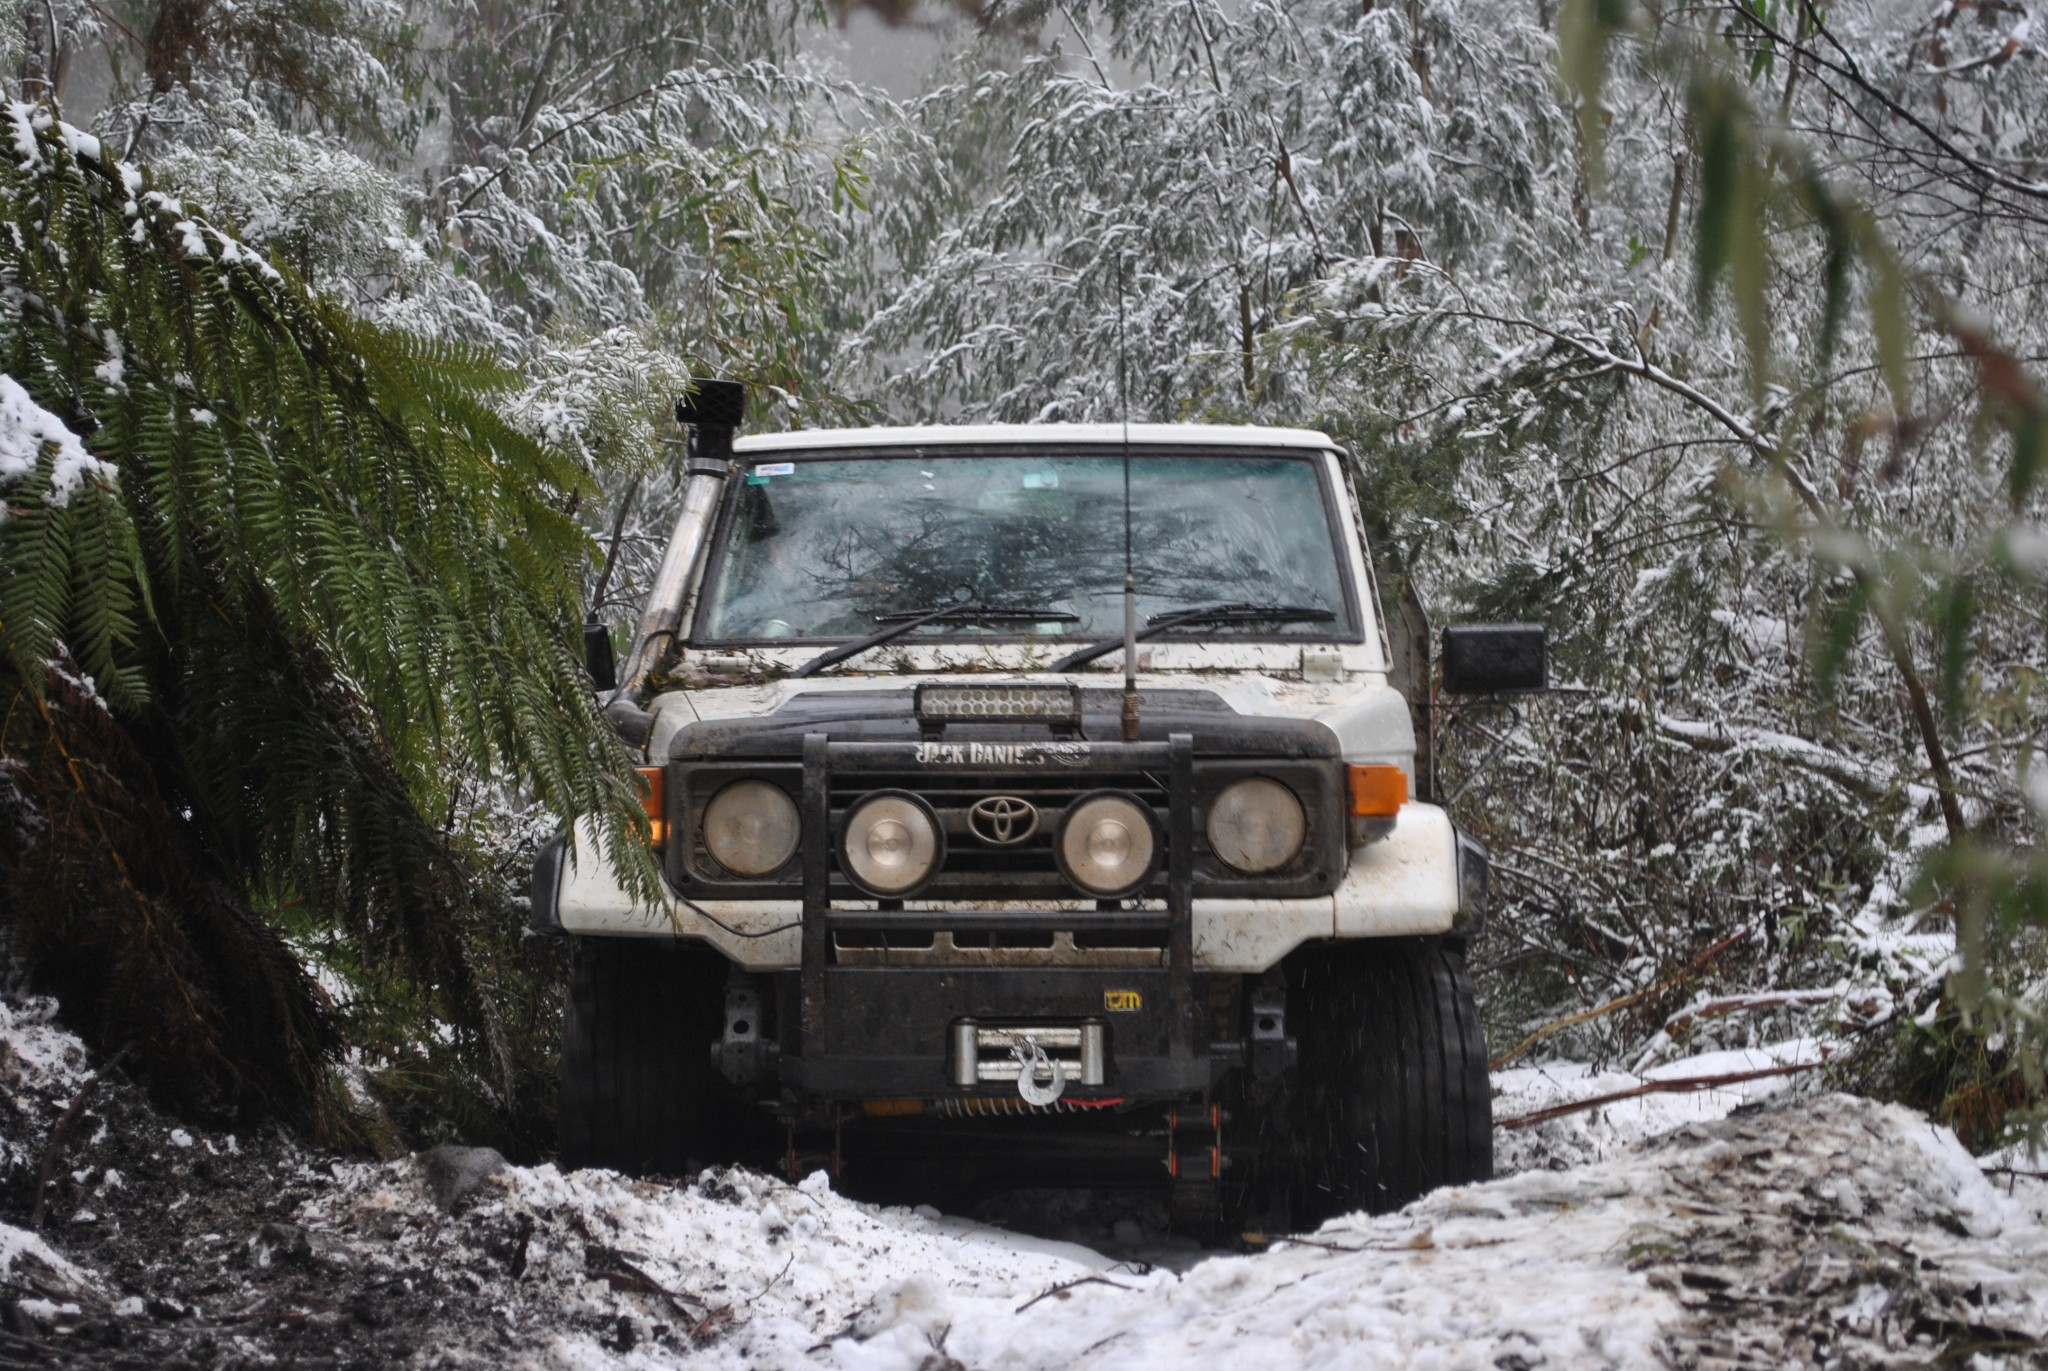 SNOW DRIVING TIPS FOR BEGINNERS